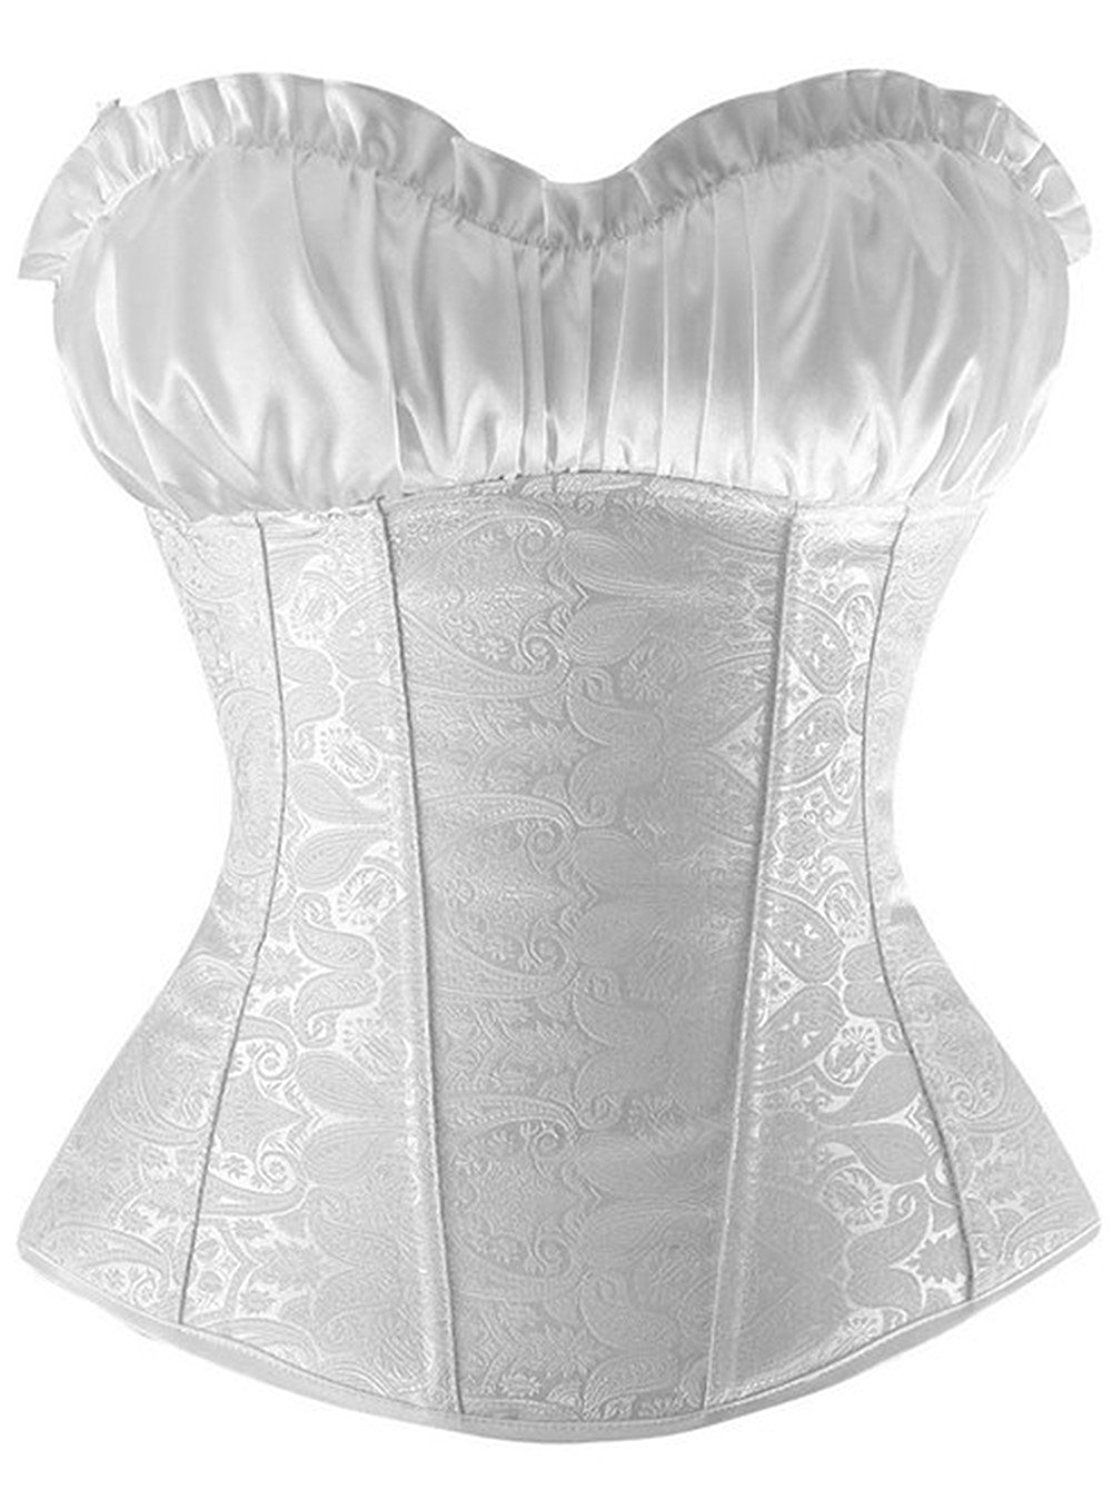 caeef111284 Sexy Women s Burlesque Lvory Overbust Corset Top with Strapless Plus Size      Remarkable product available now.   Plus size lingerie